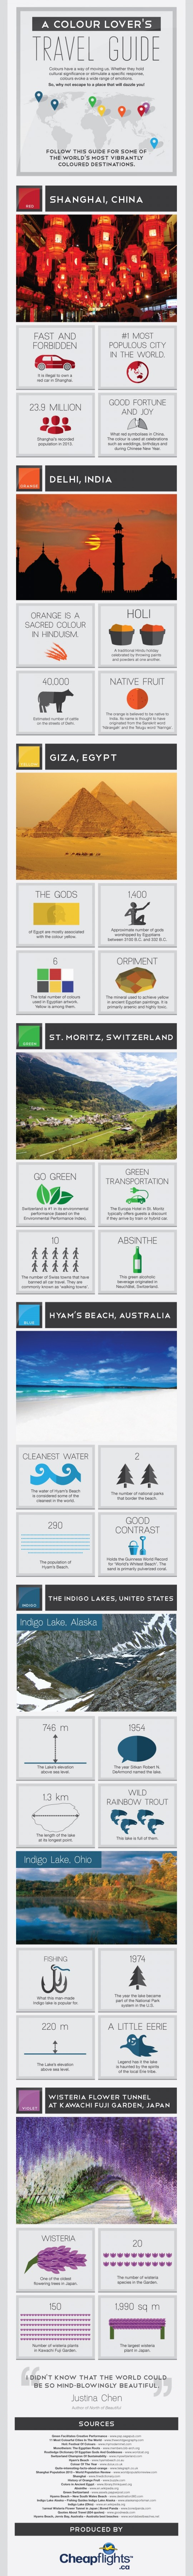 a-colour-lovers-travel-guide-infographic_52f1145c5f349_w540